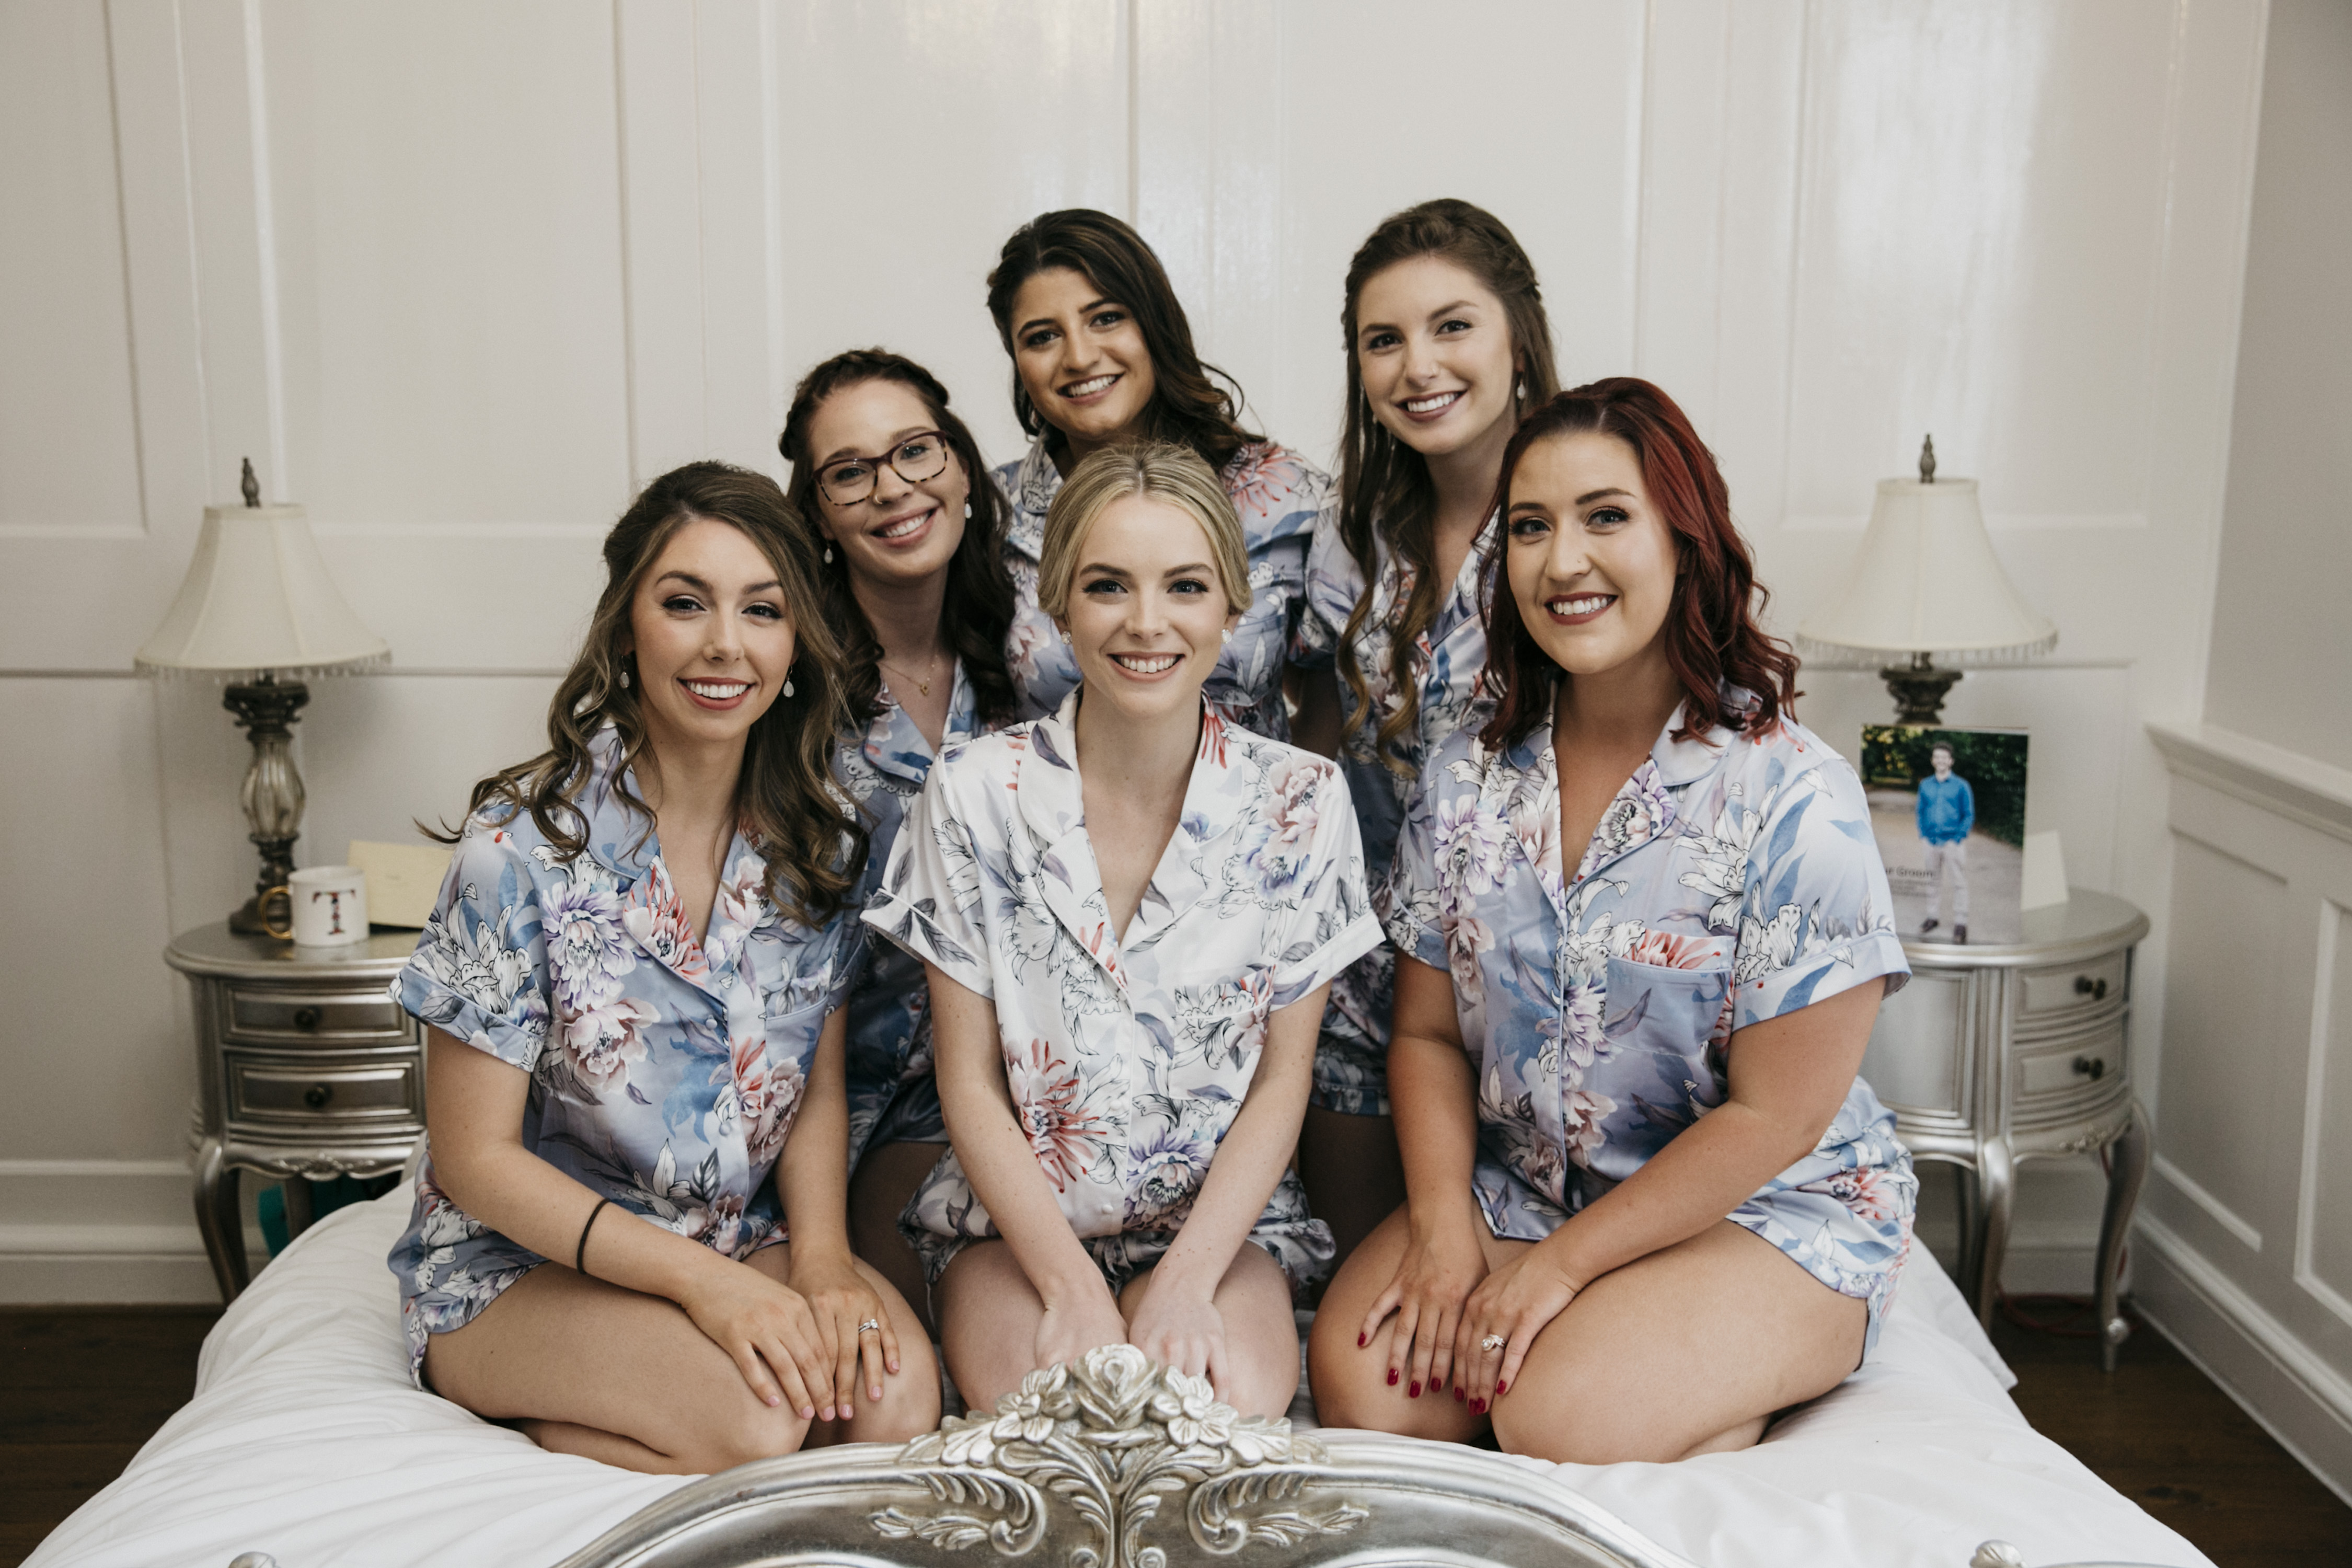 American bridal party, bridesmaids and mother of the bride accompany opera singer bride with beautif